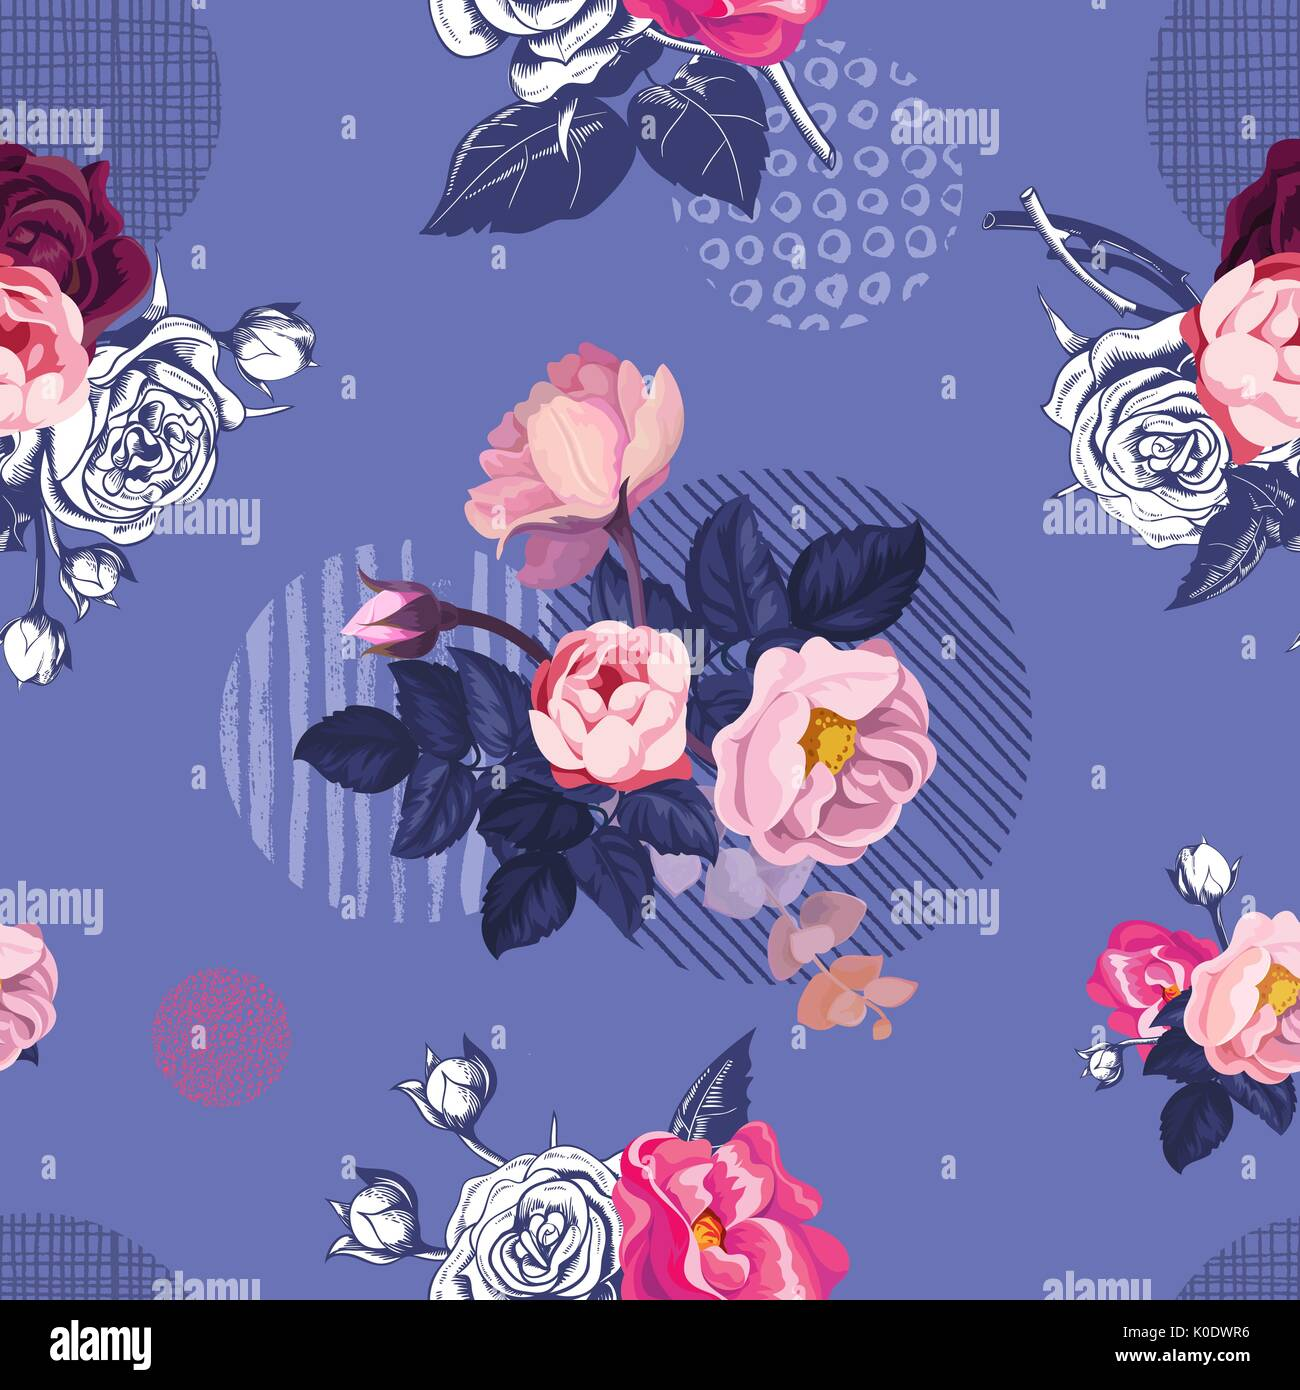 Romantic natural seamless pattern with half-colored blooming summer flowers  and leaves against purple background